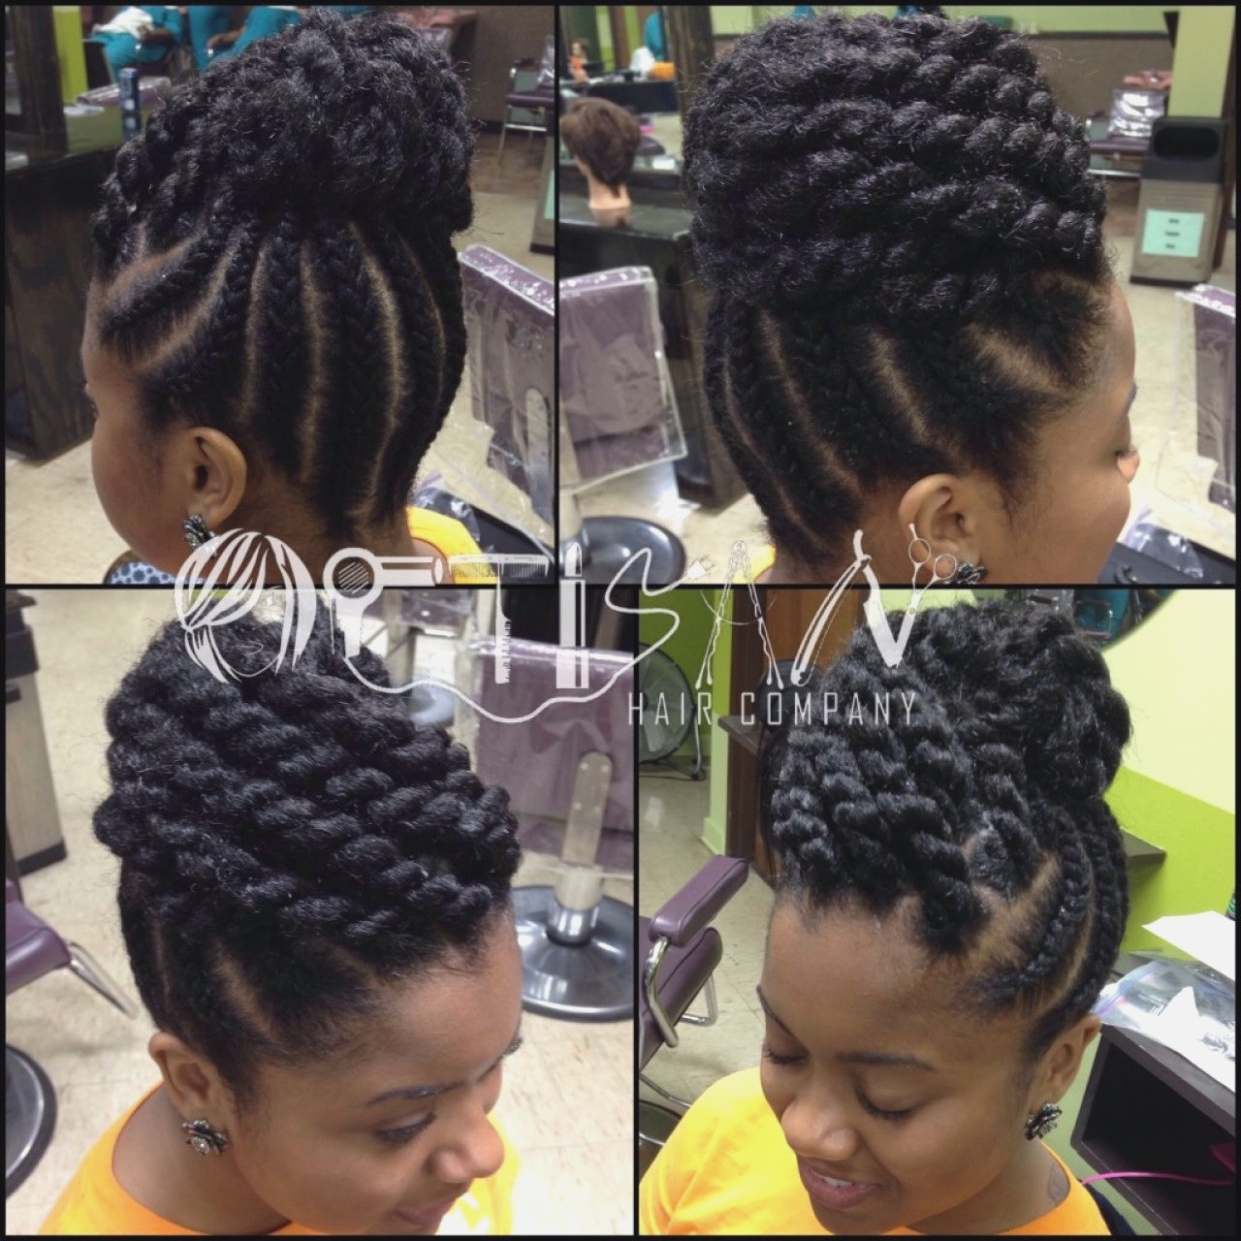 What You Know About Natural Updo Hairstyles For Black Hair Regarding 2017 Braided Up Hairstyles For Black Hair (View 14 of 15)